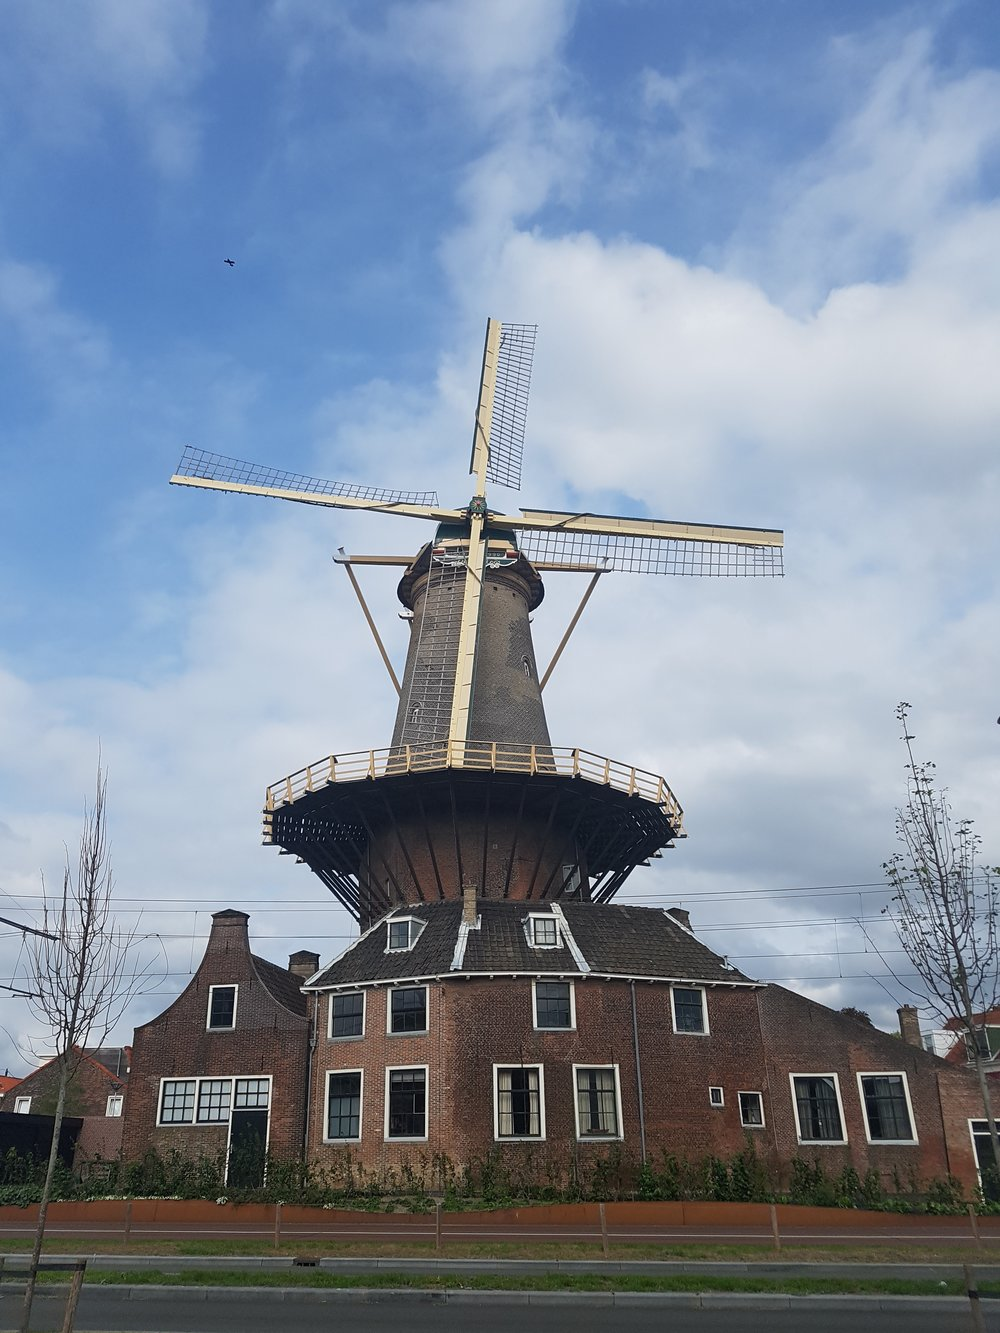 the windmill in Delft